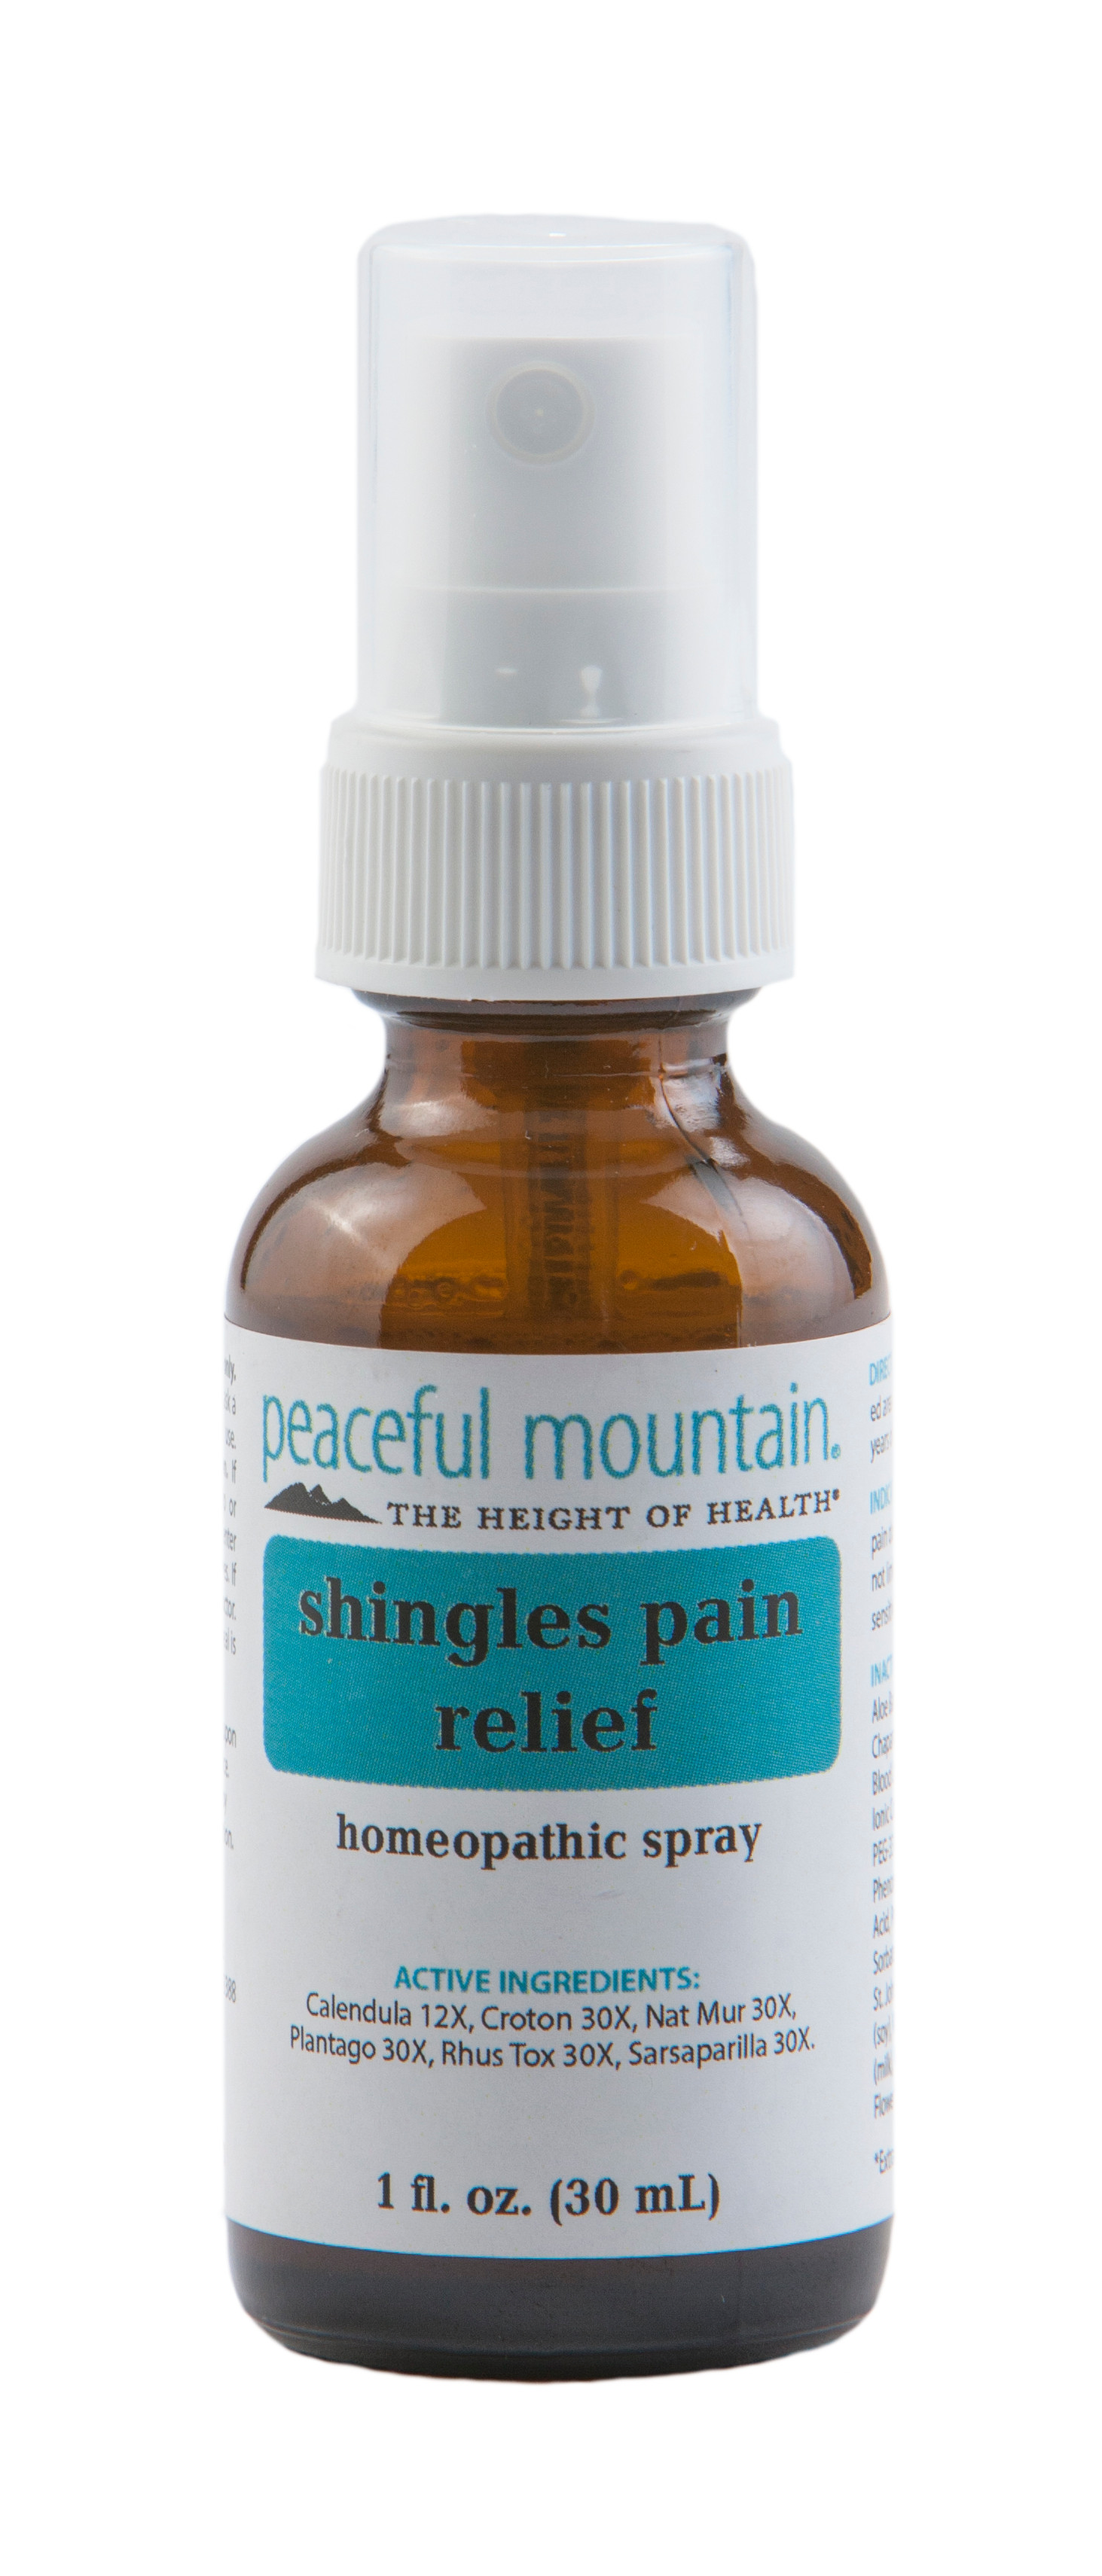 Shingles Pain Relief